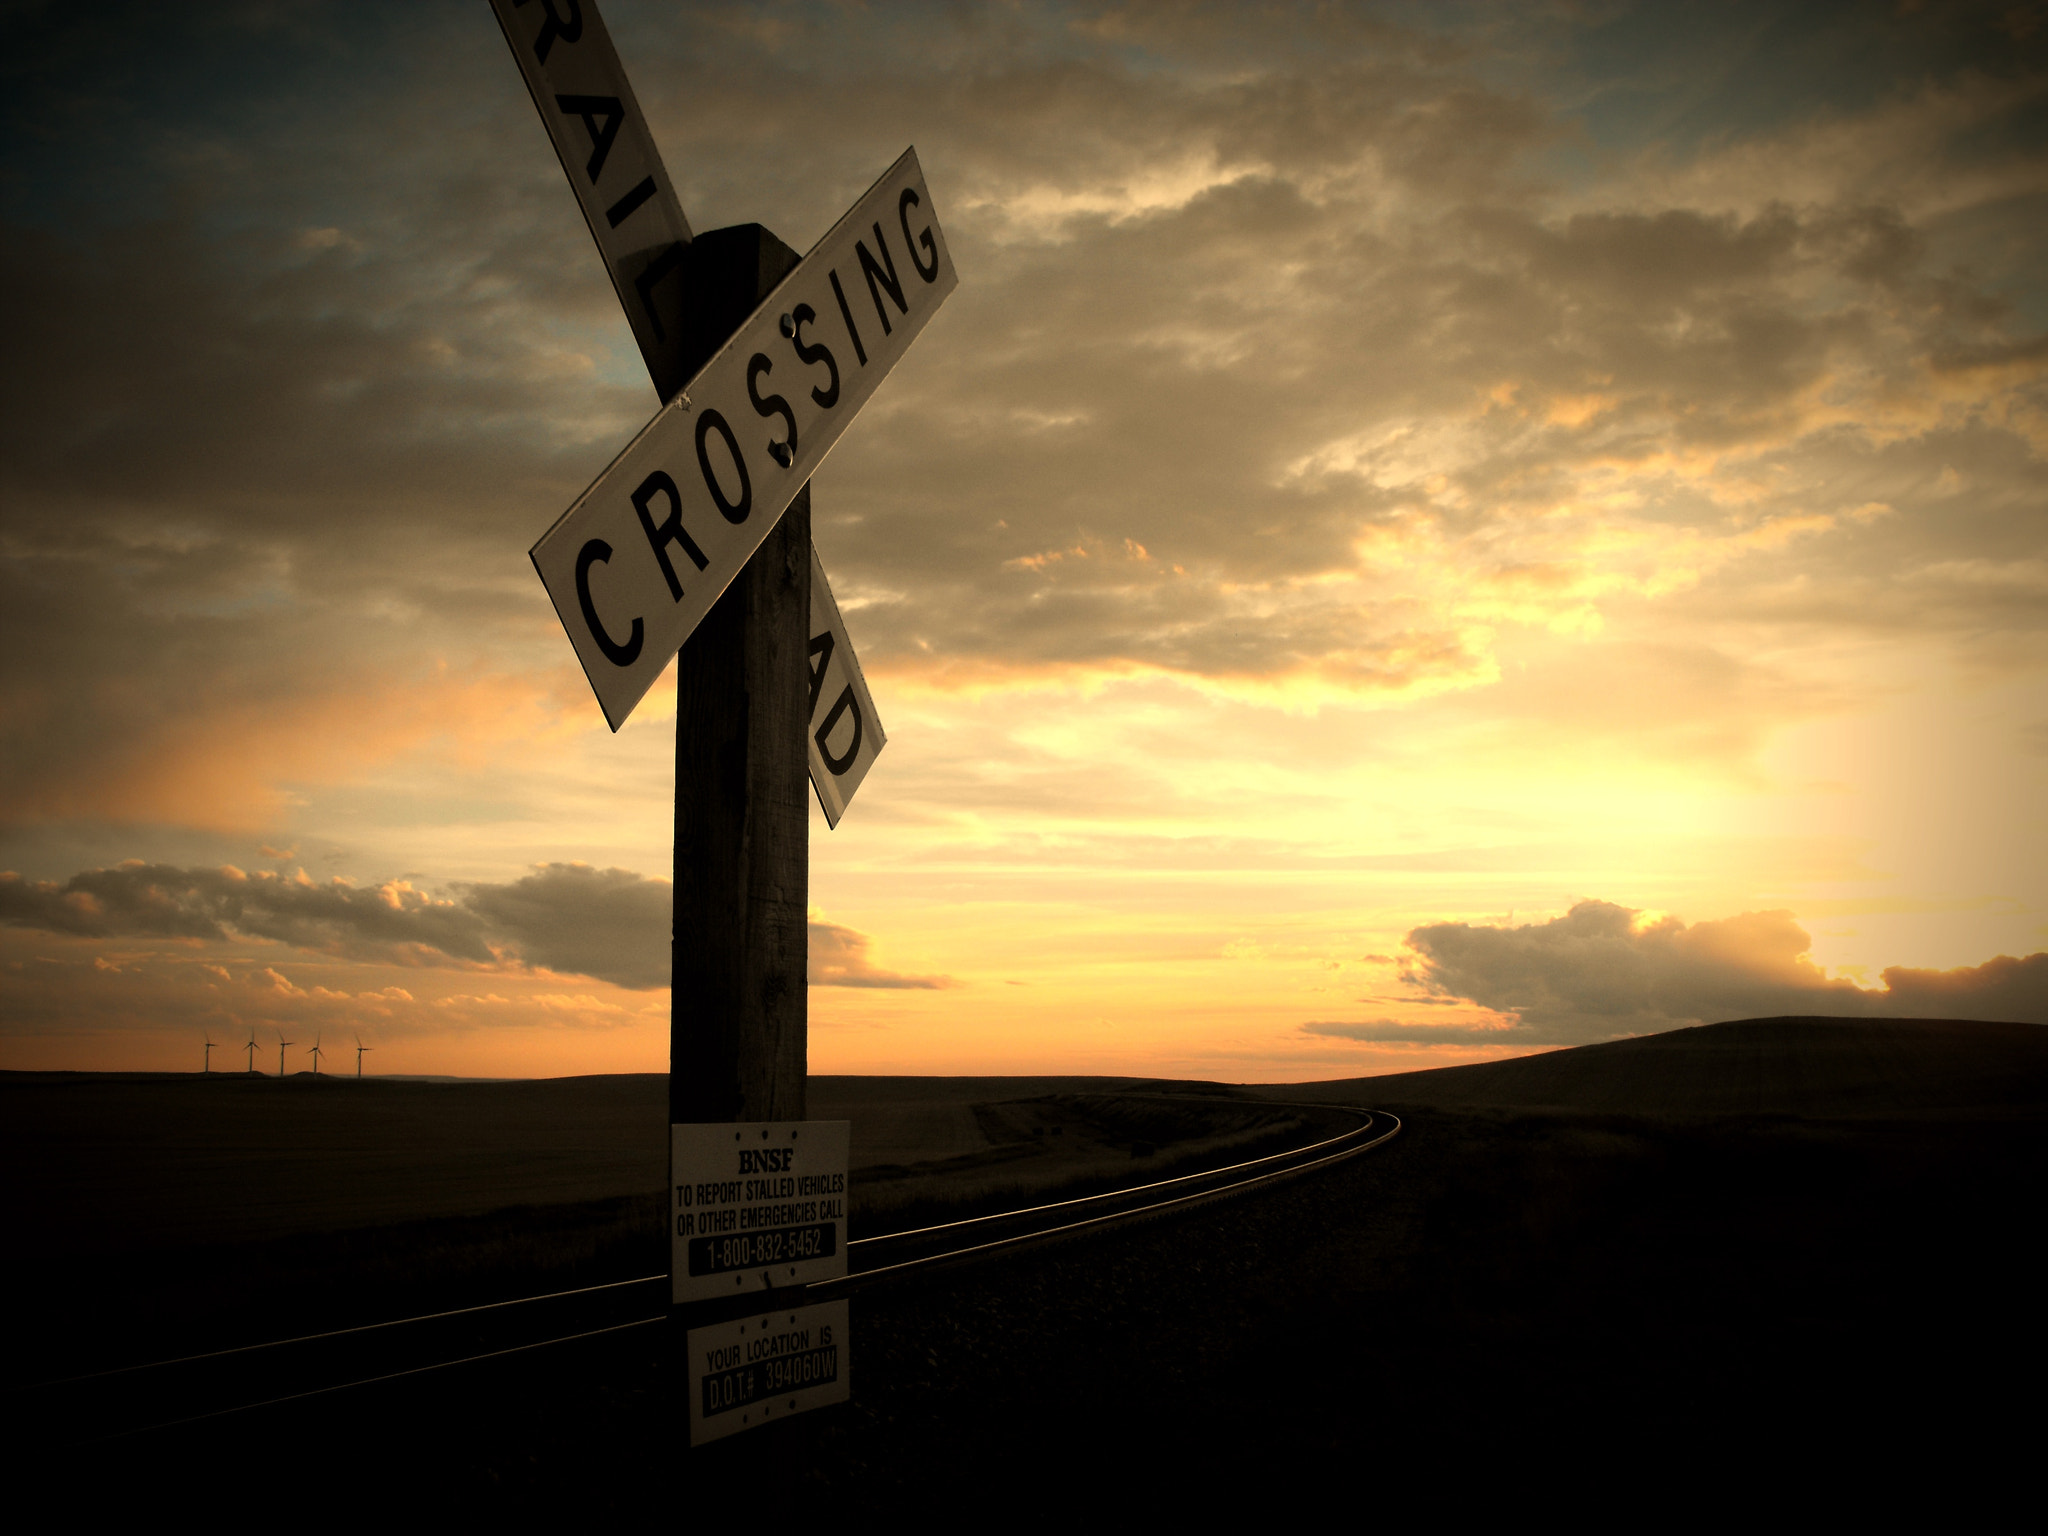 Photograph Railroad Crossing by Nicholas Johnson on 500px